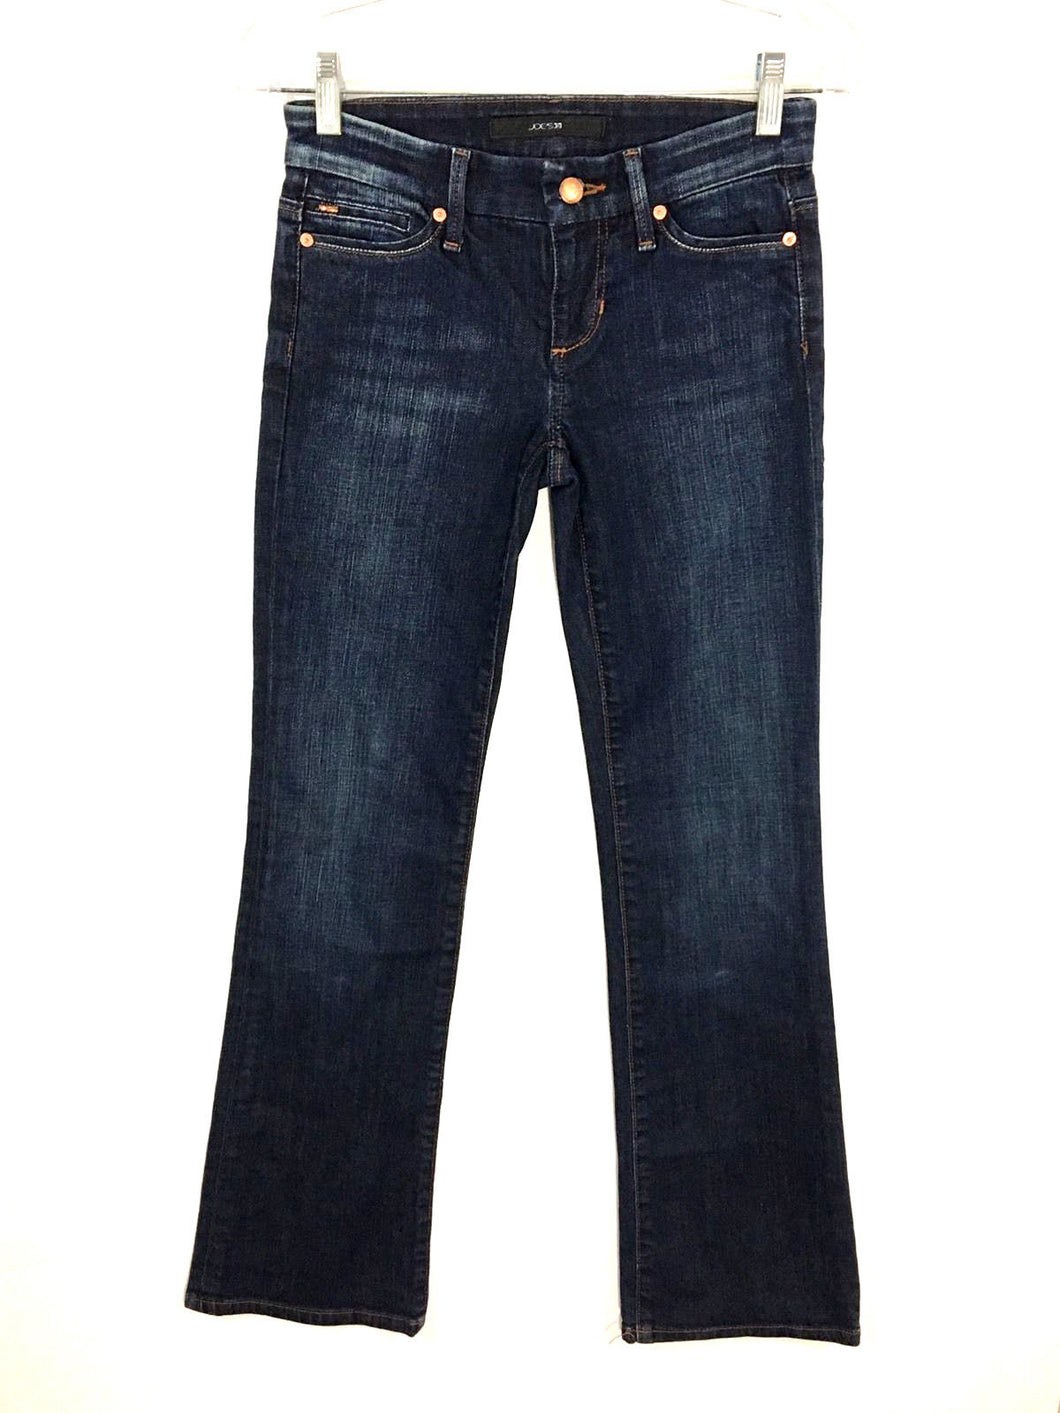 Joe's Jeans The Provocateur Weston Wash Boot Cut Women's Size 24 Actual 25x30.5 - Preowned - FunkyCrap Boutique